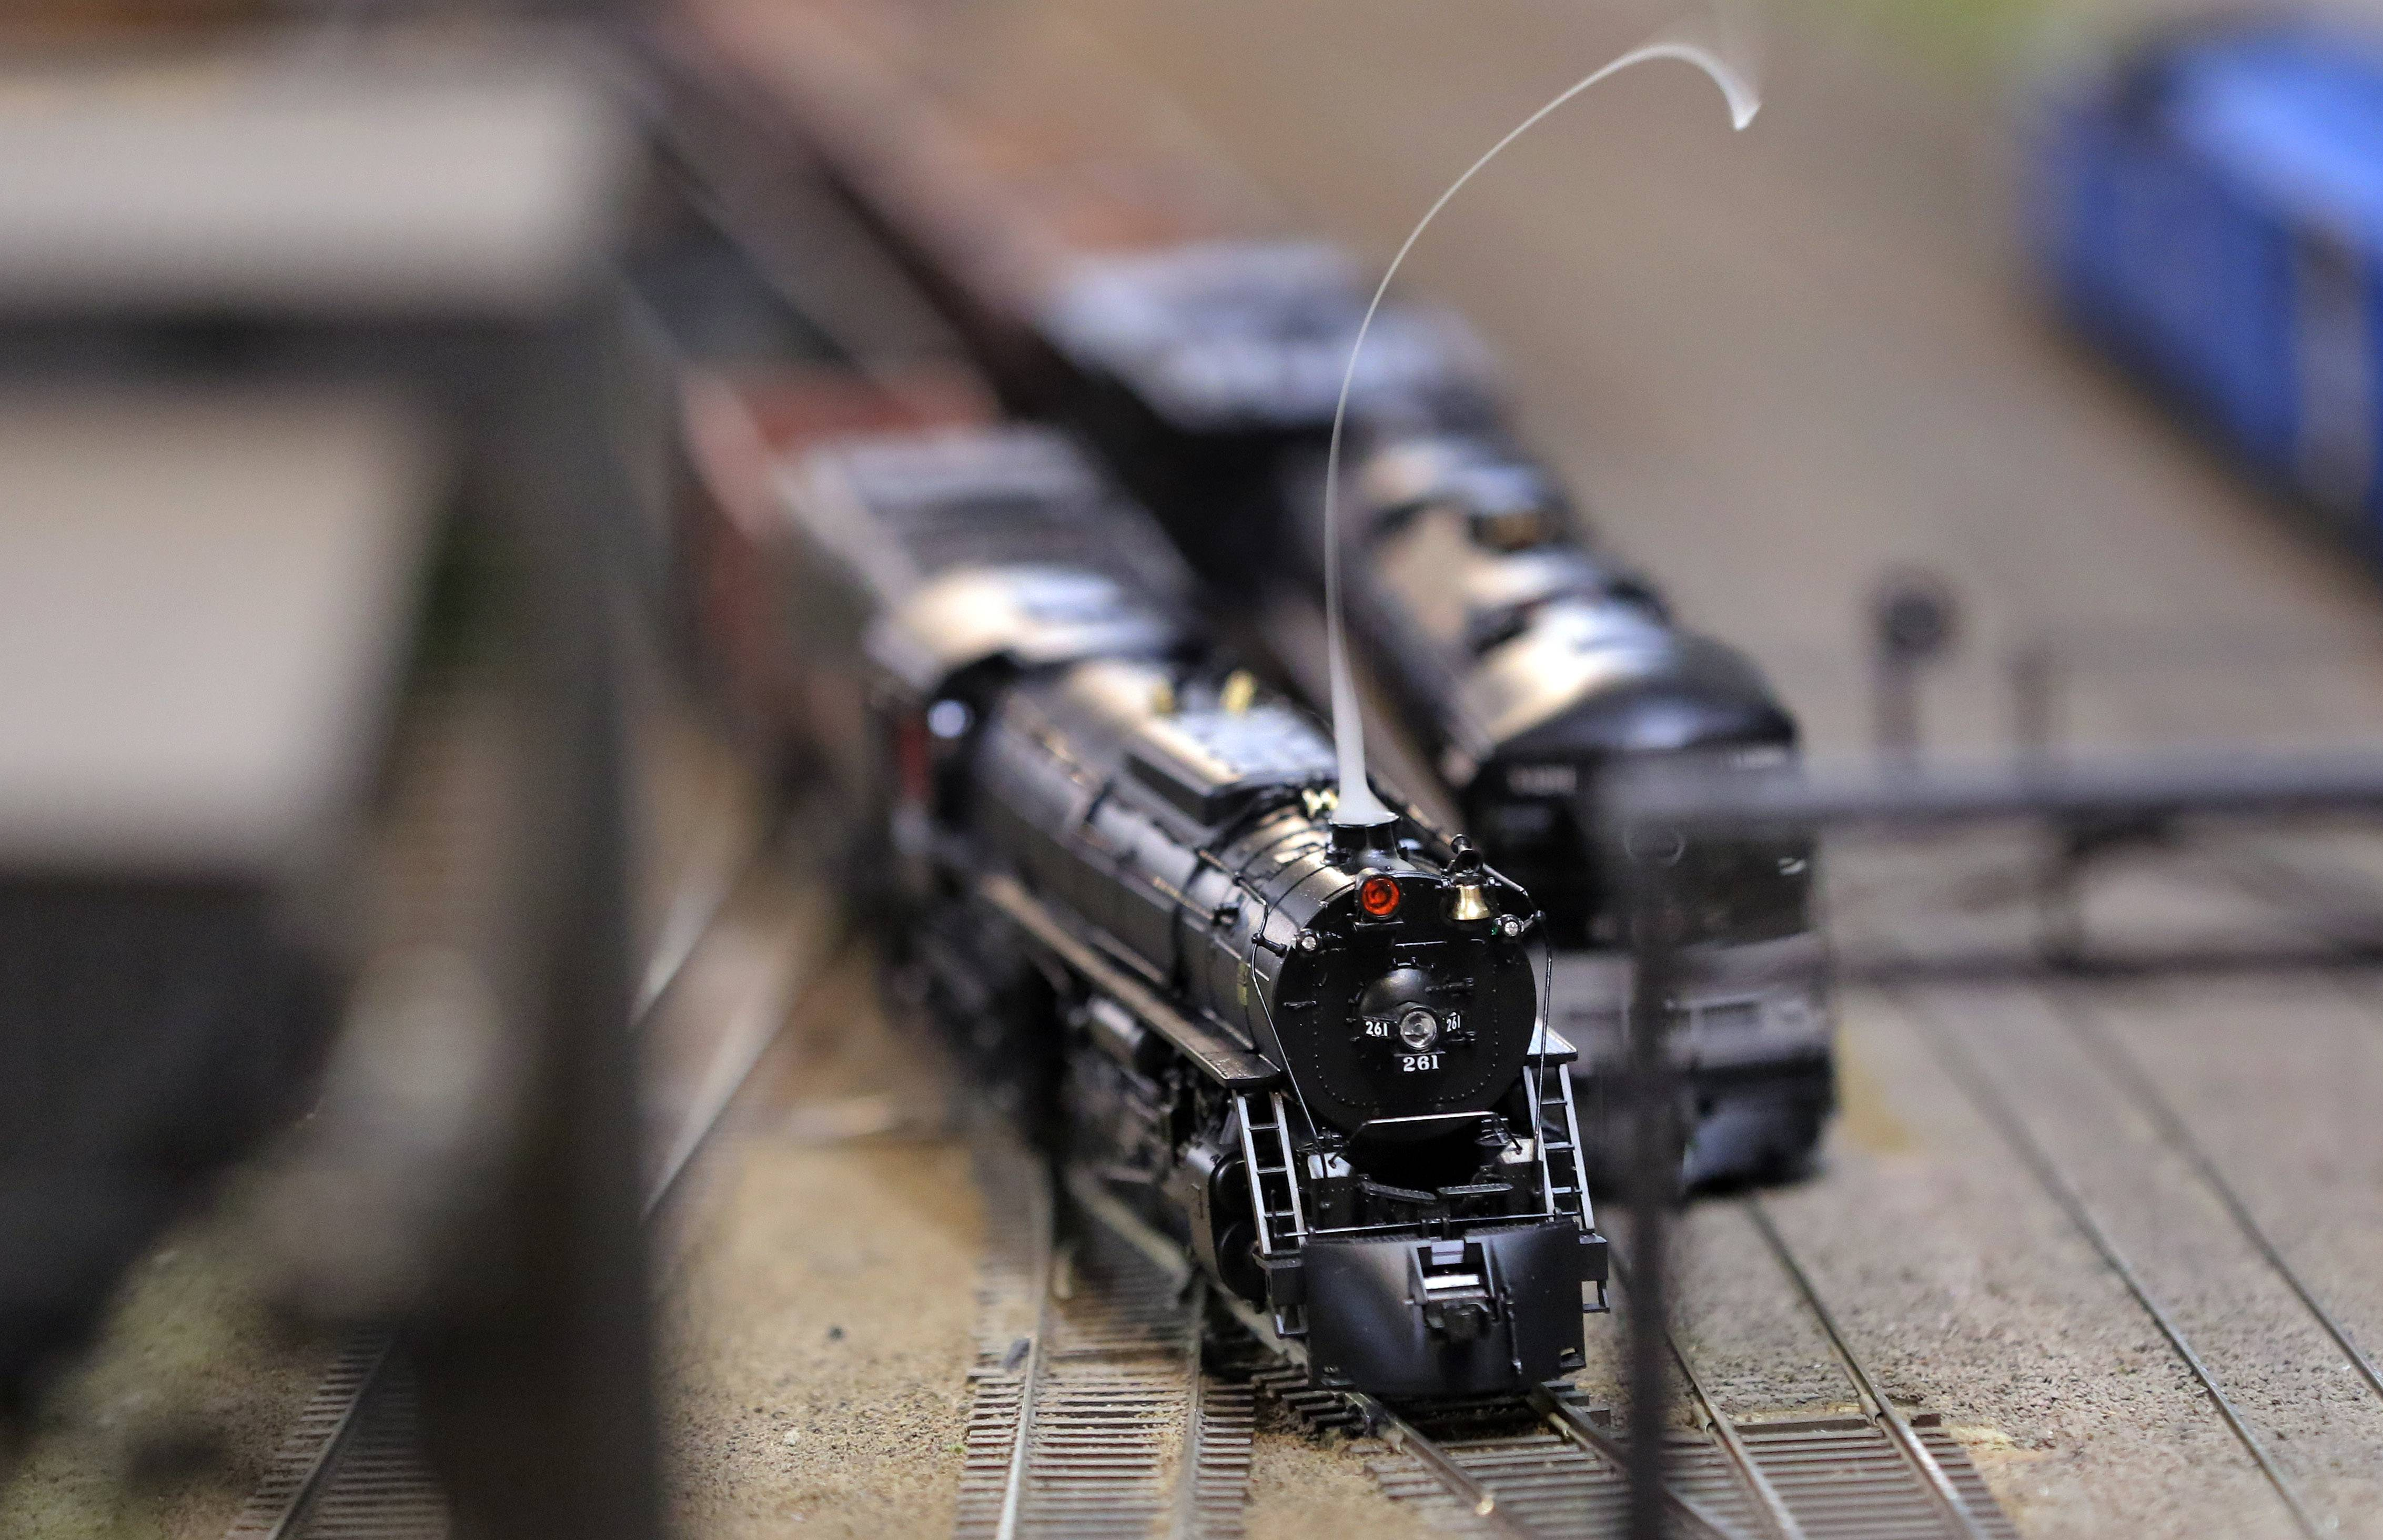 A locomotive spits steam as it chugs down the tracks at the Lake County Model Railroad Club in Wauconda.